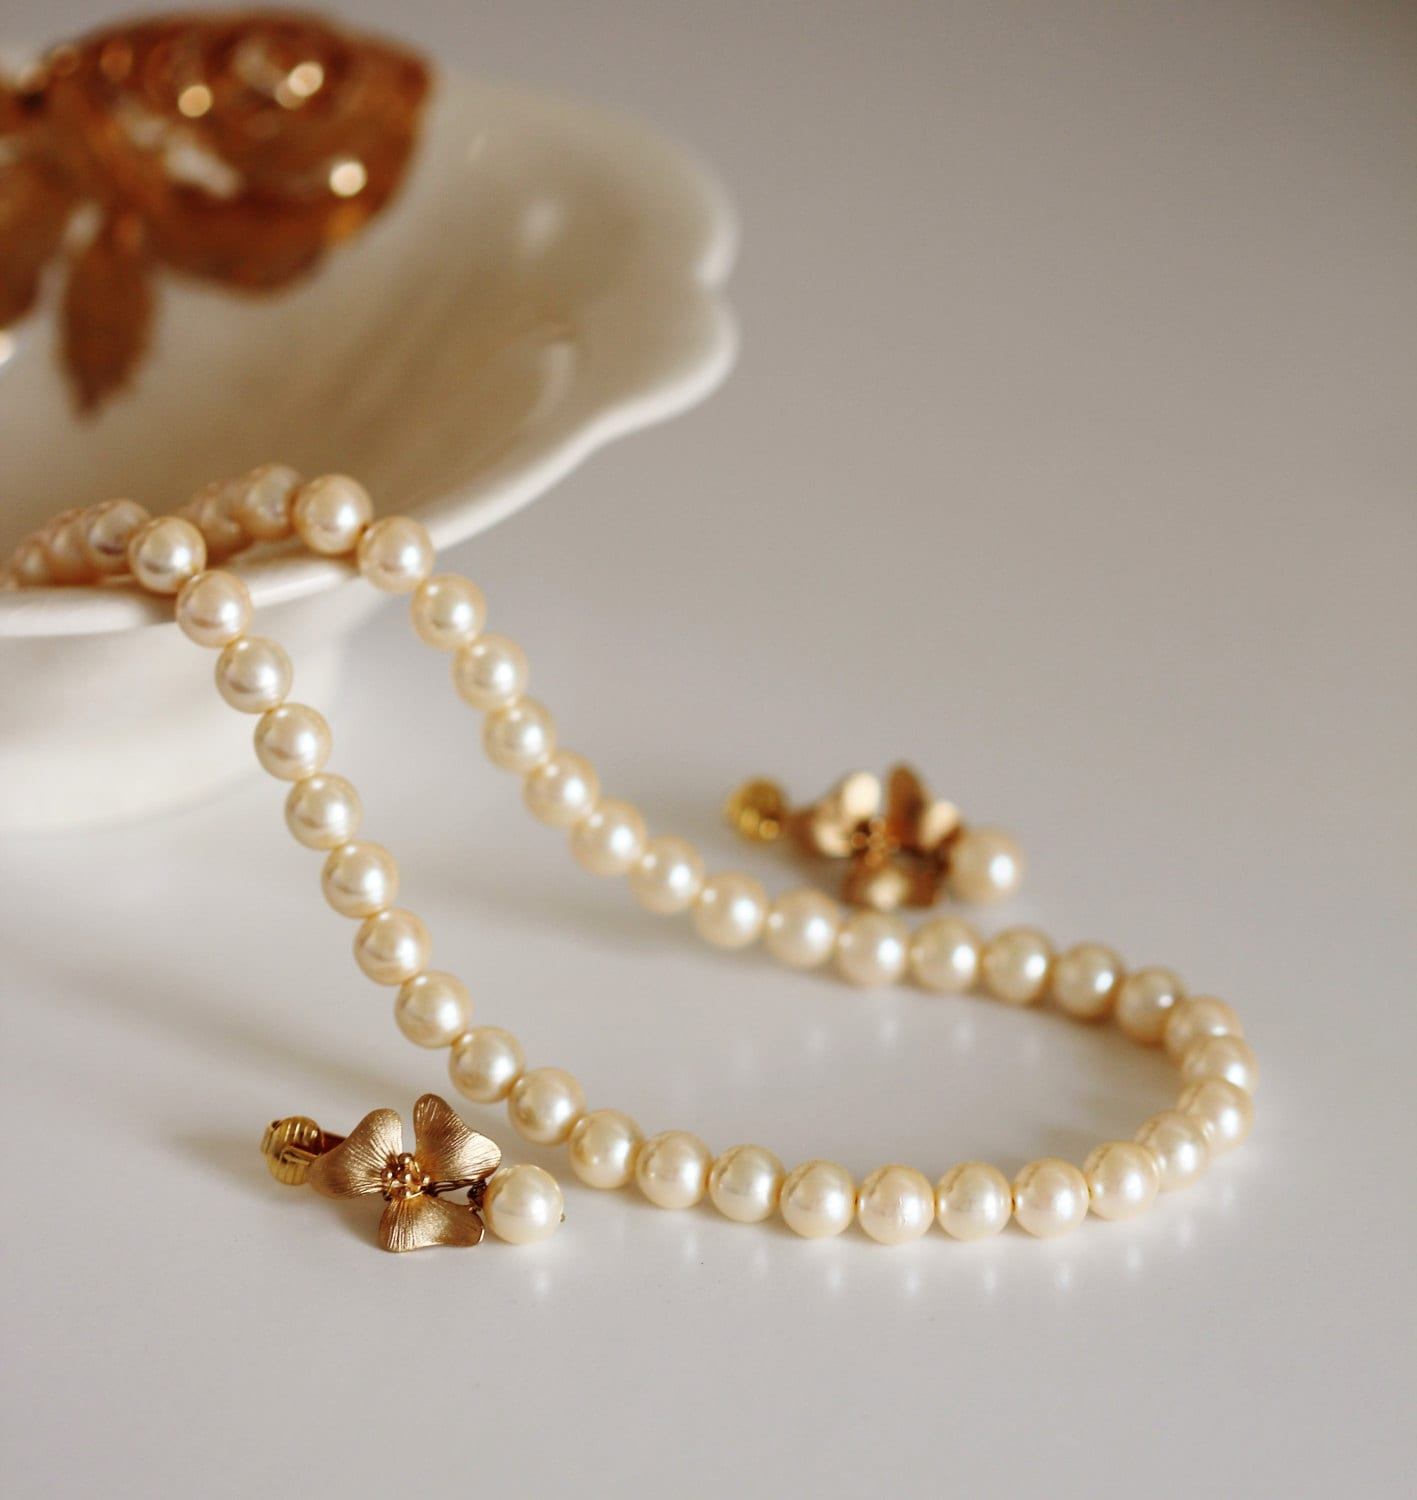 Gold Bridal Jewelry Set Vintage Style Pearl Wedding Jewelry Clip On Earrings Ivory Pearl Necklace Mother of the Bride Gift Bridesmaid Gift